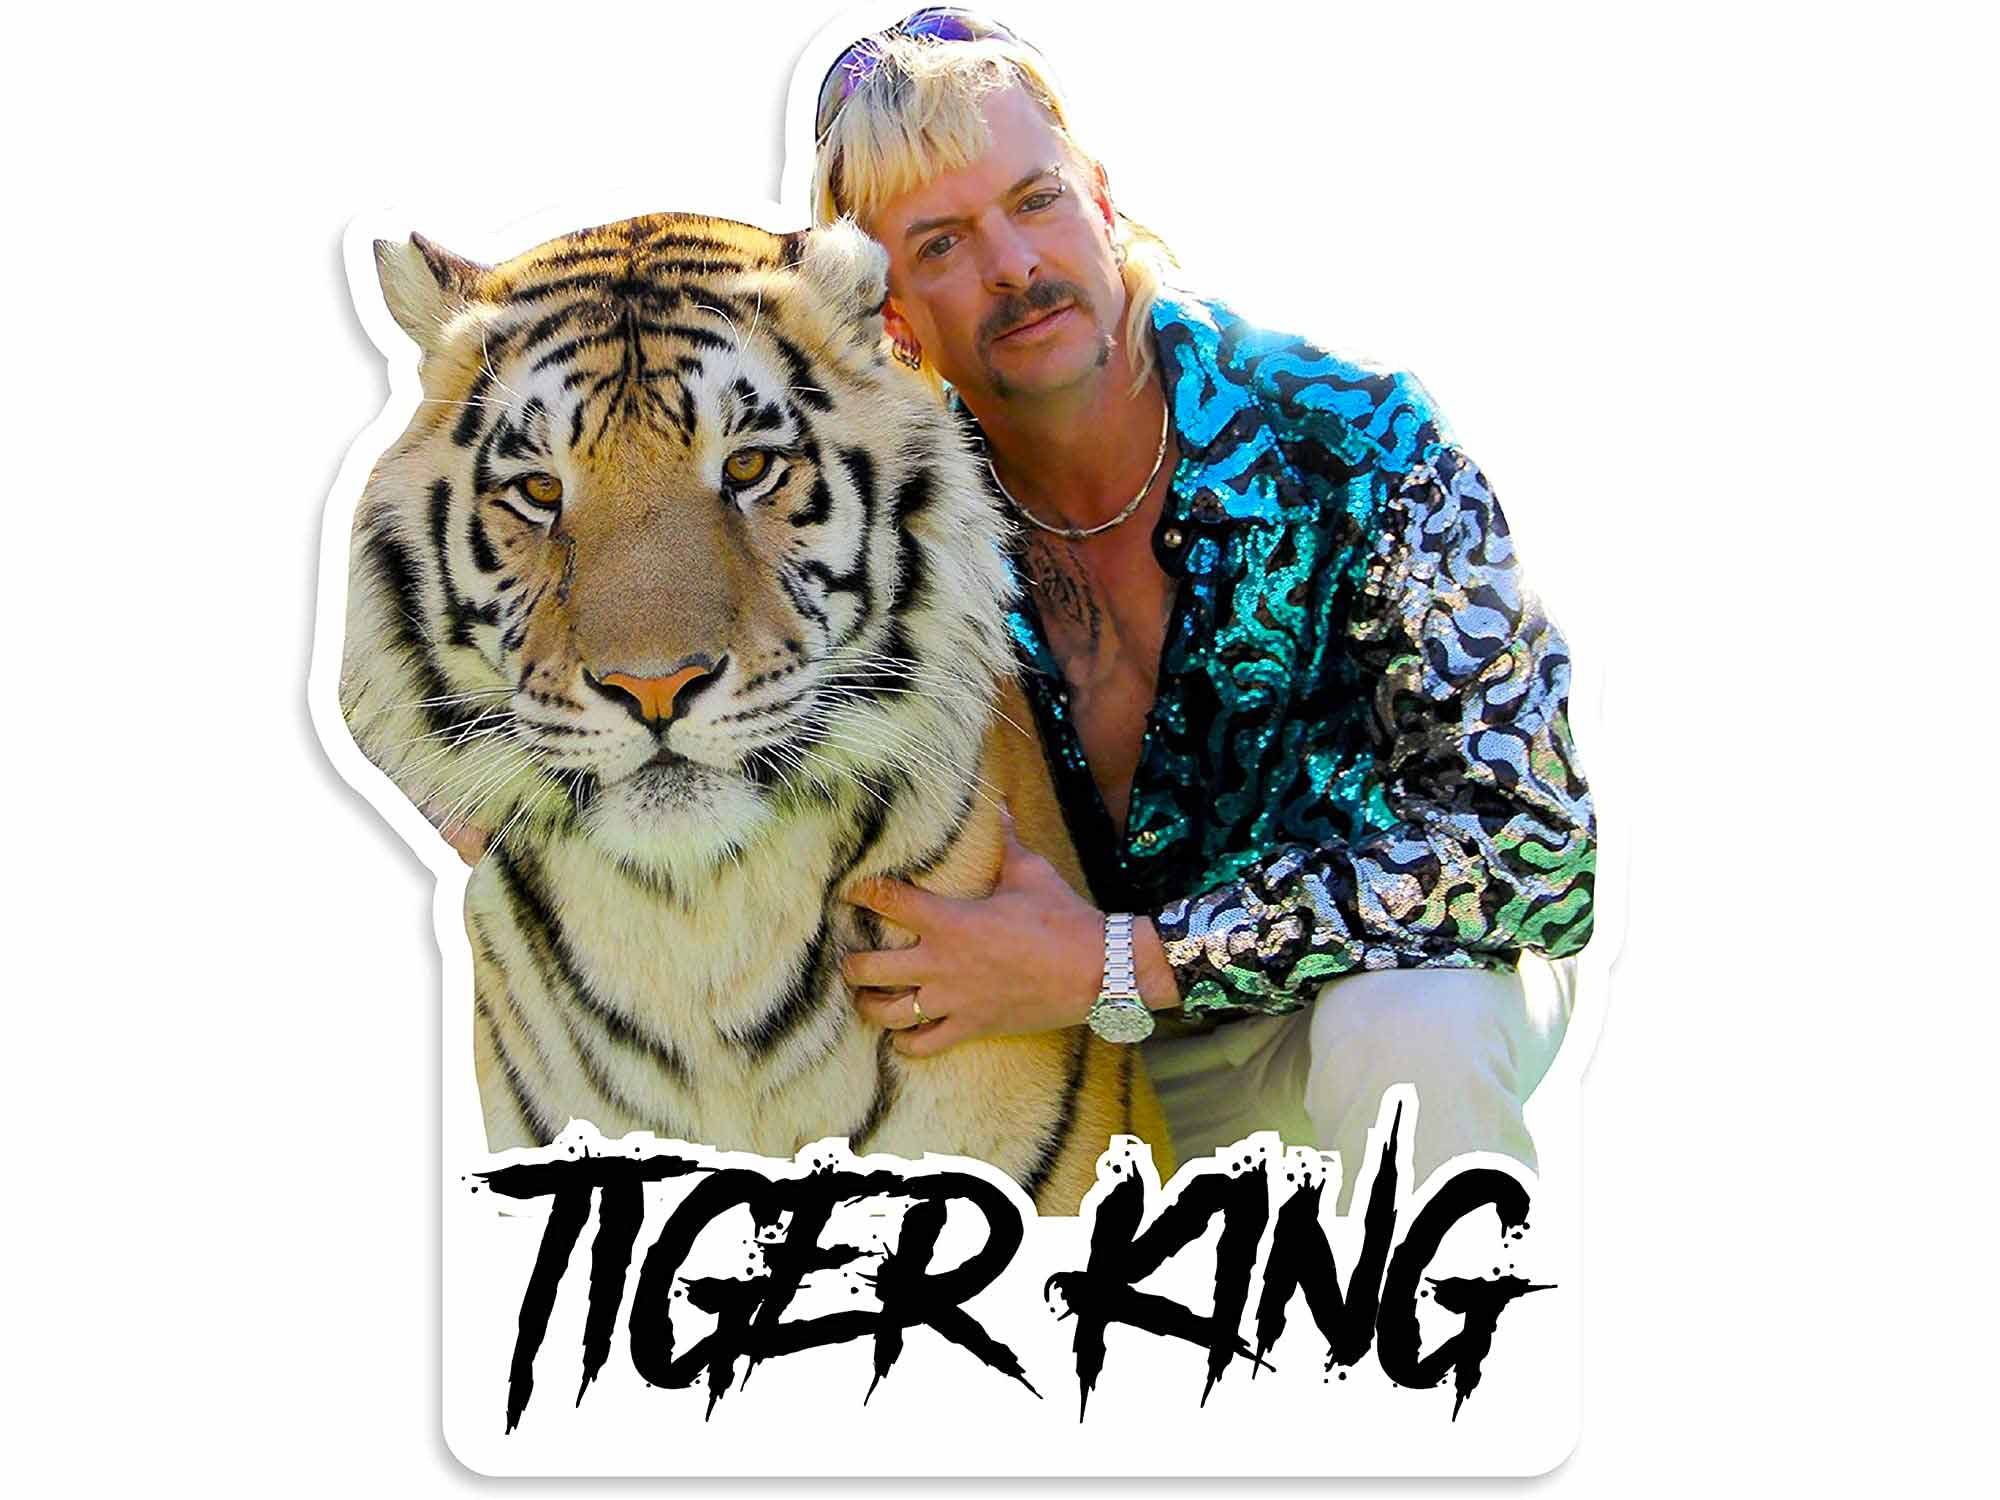 Tiger King guy with tiger